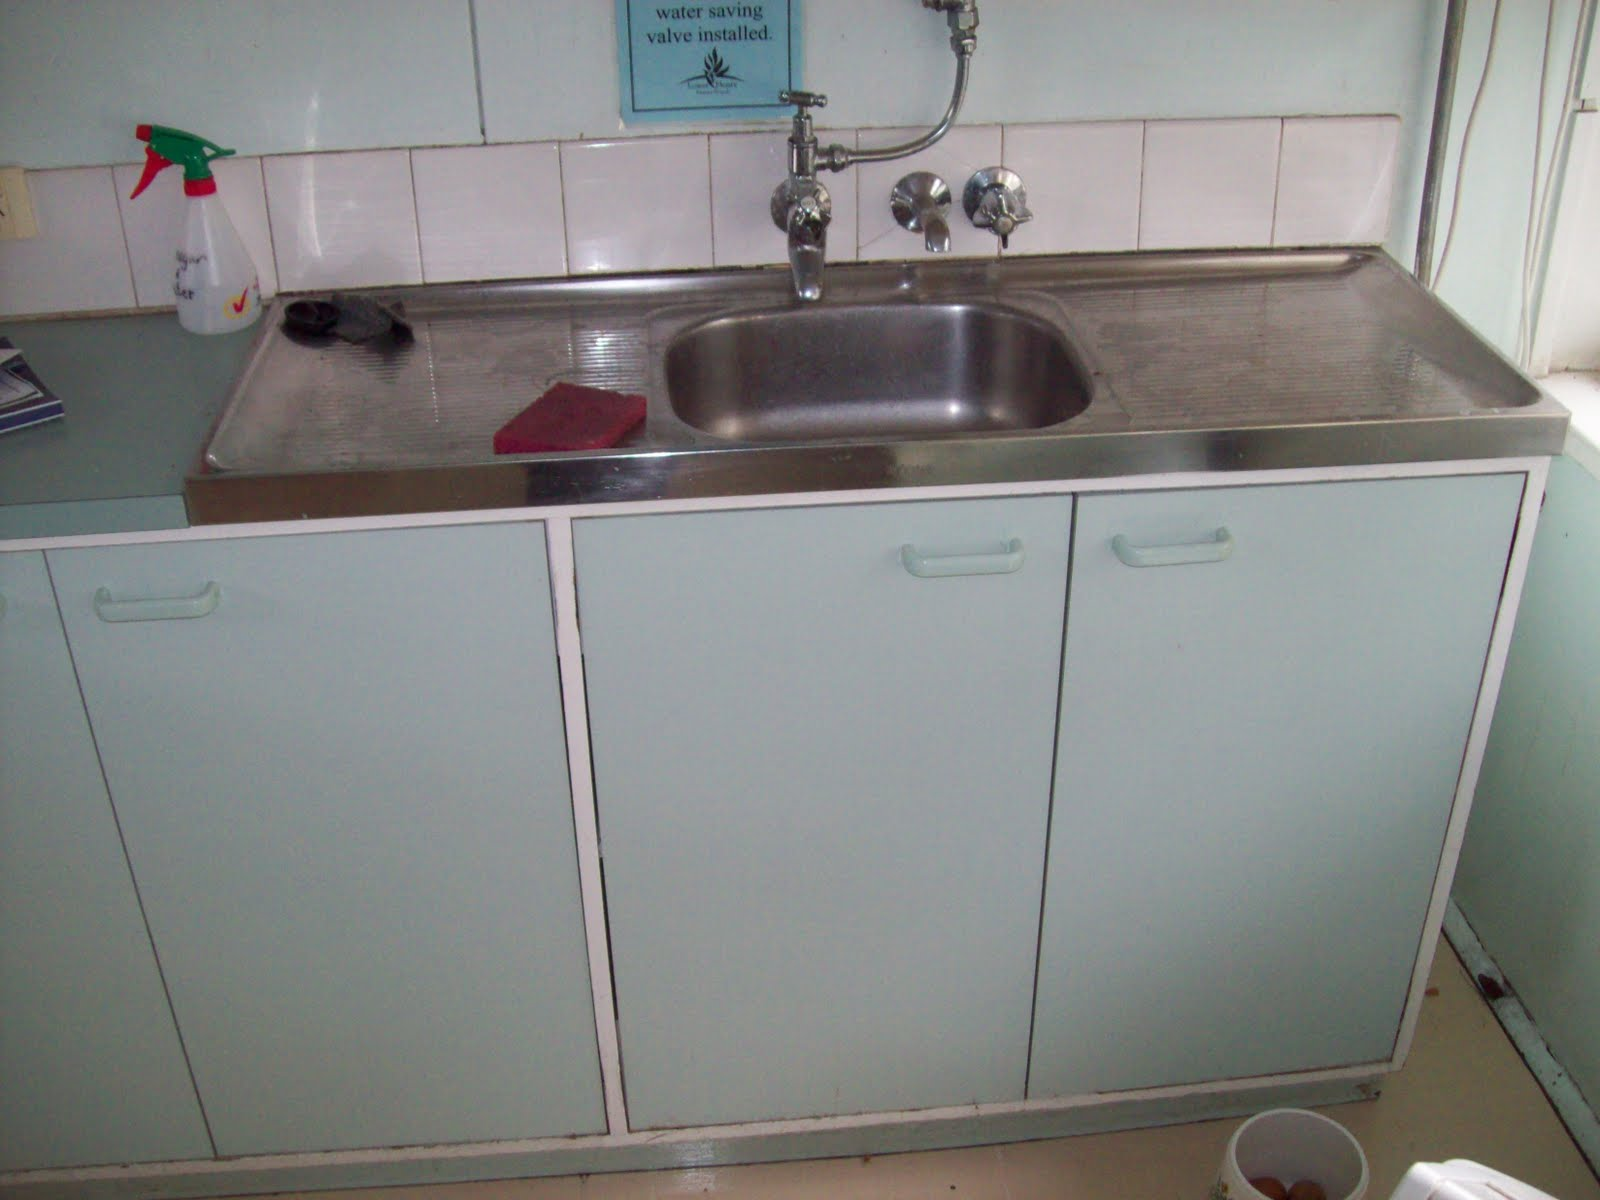 Stainless Steel Sinks From An Old School